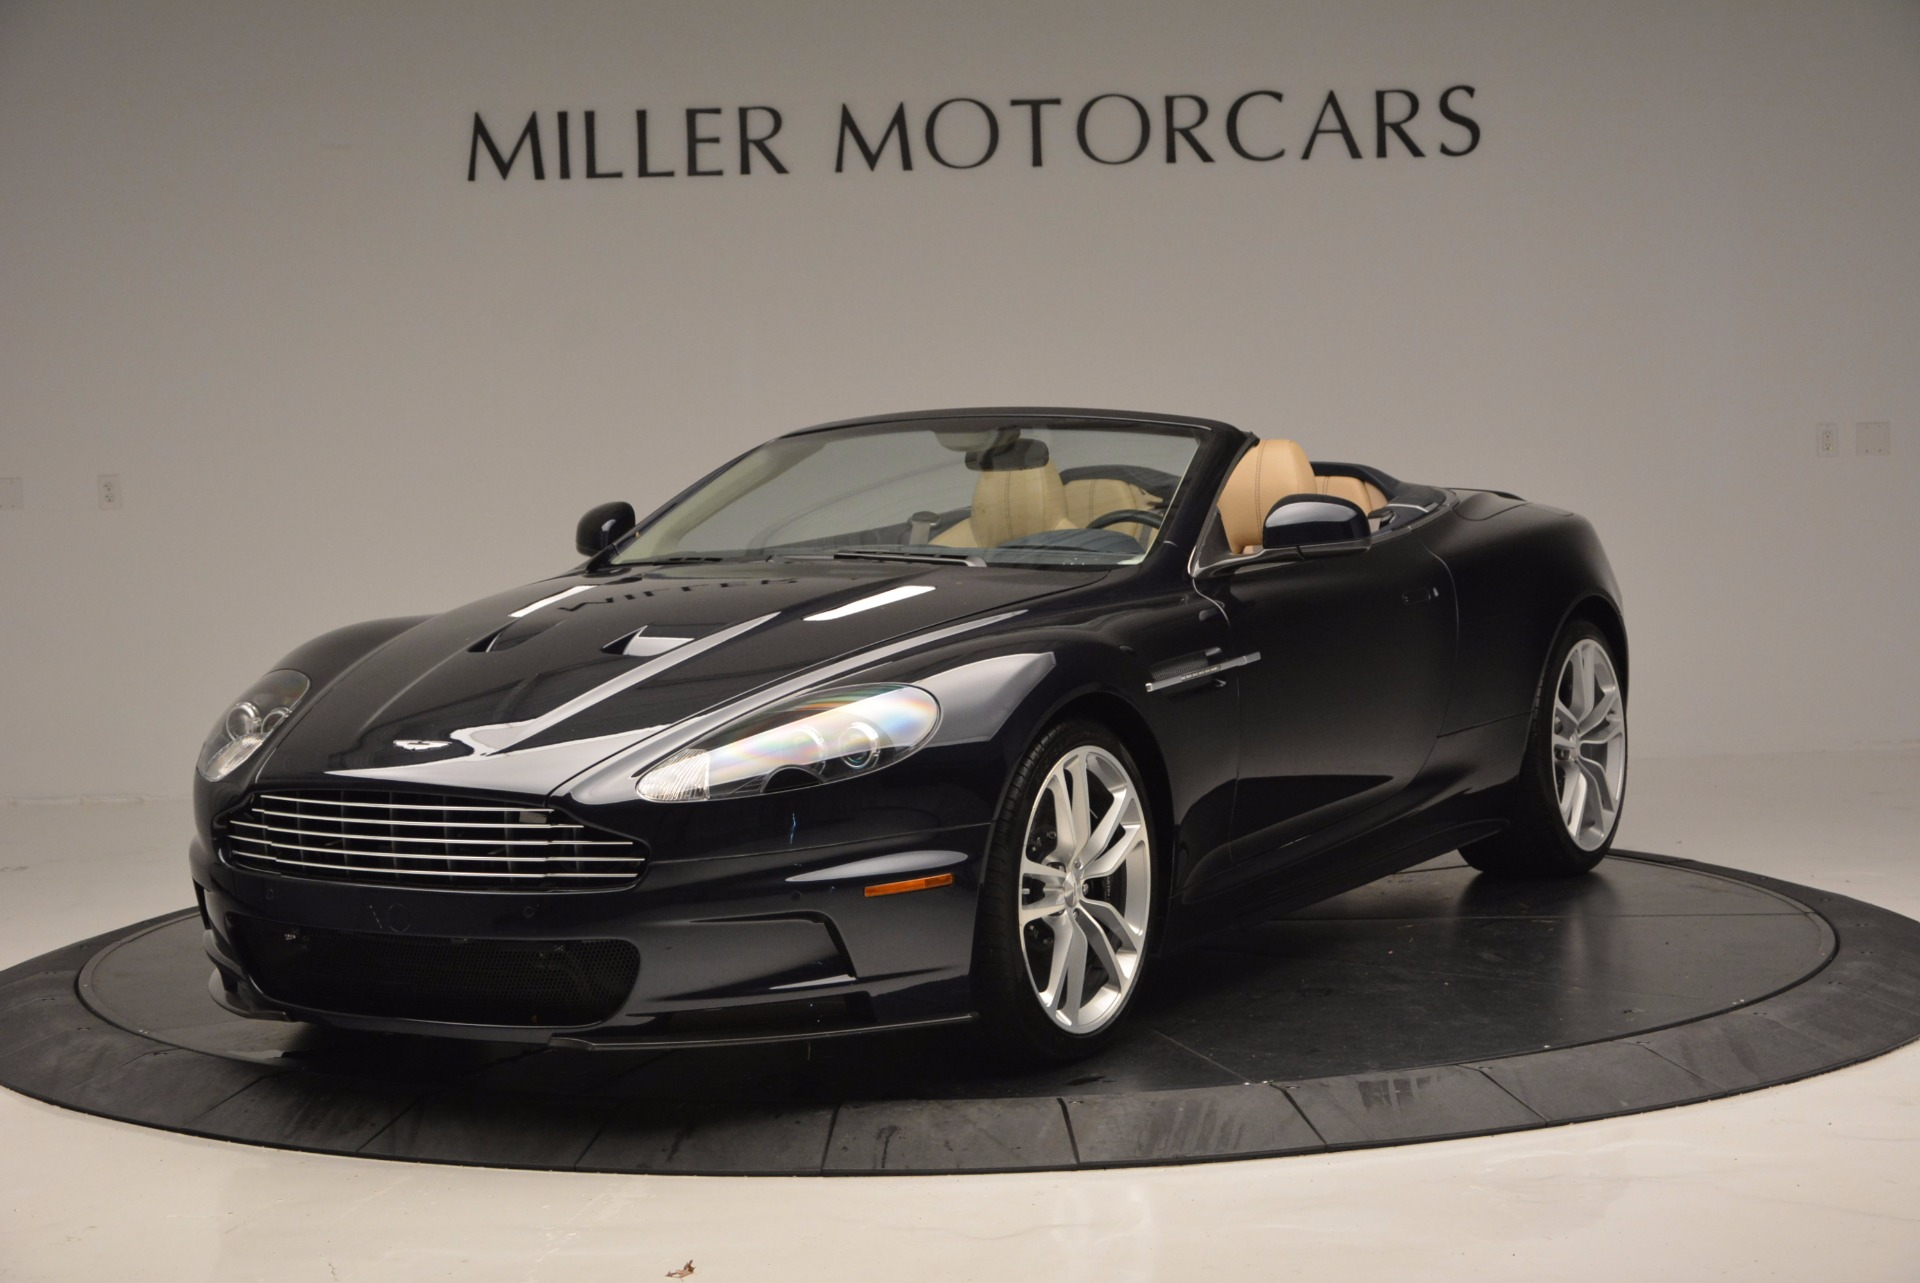 Used 2012 Aston Martin DBS Volante for sale Sold at McLaren Greenwich in Greenwich CT 06830 1